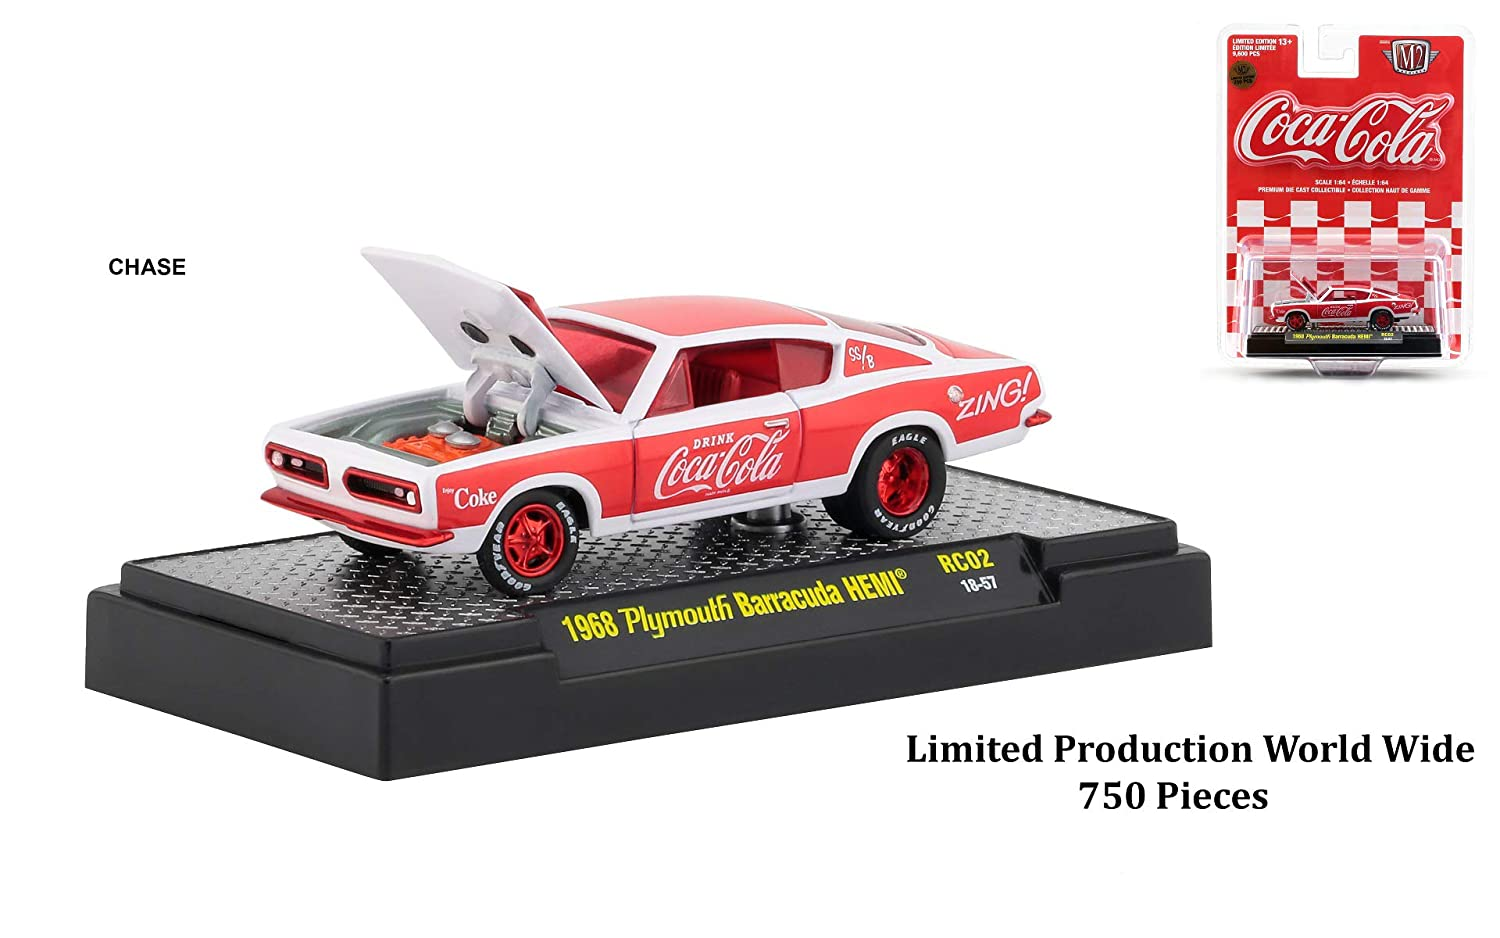 M2 Machines Hobby Exclusive Coke 1955 Chevrolet Bel Air RC02 Limited 4,800